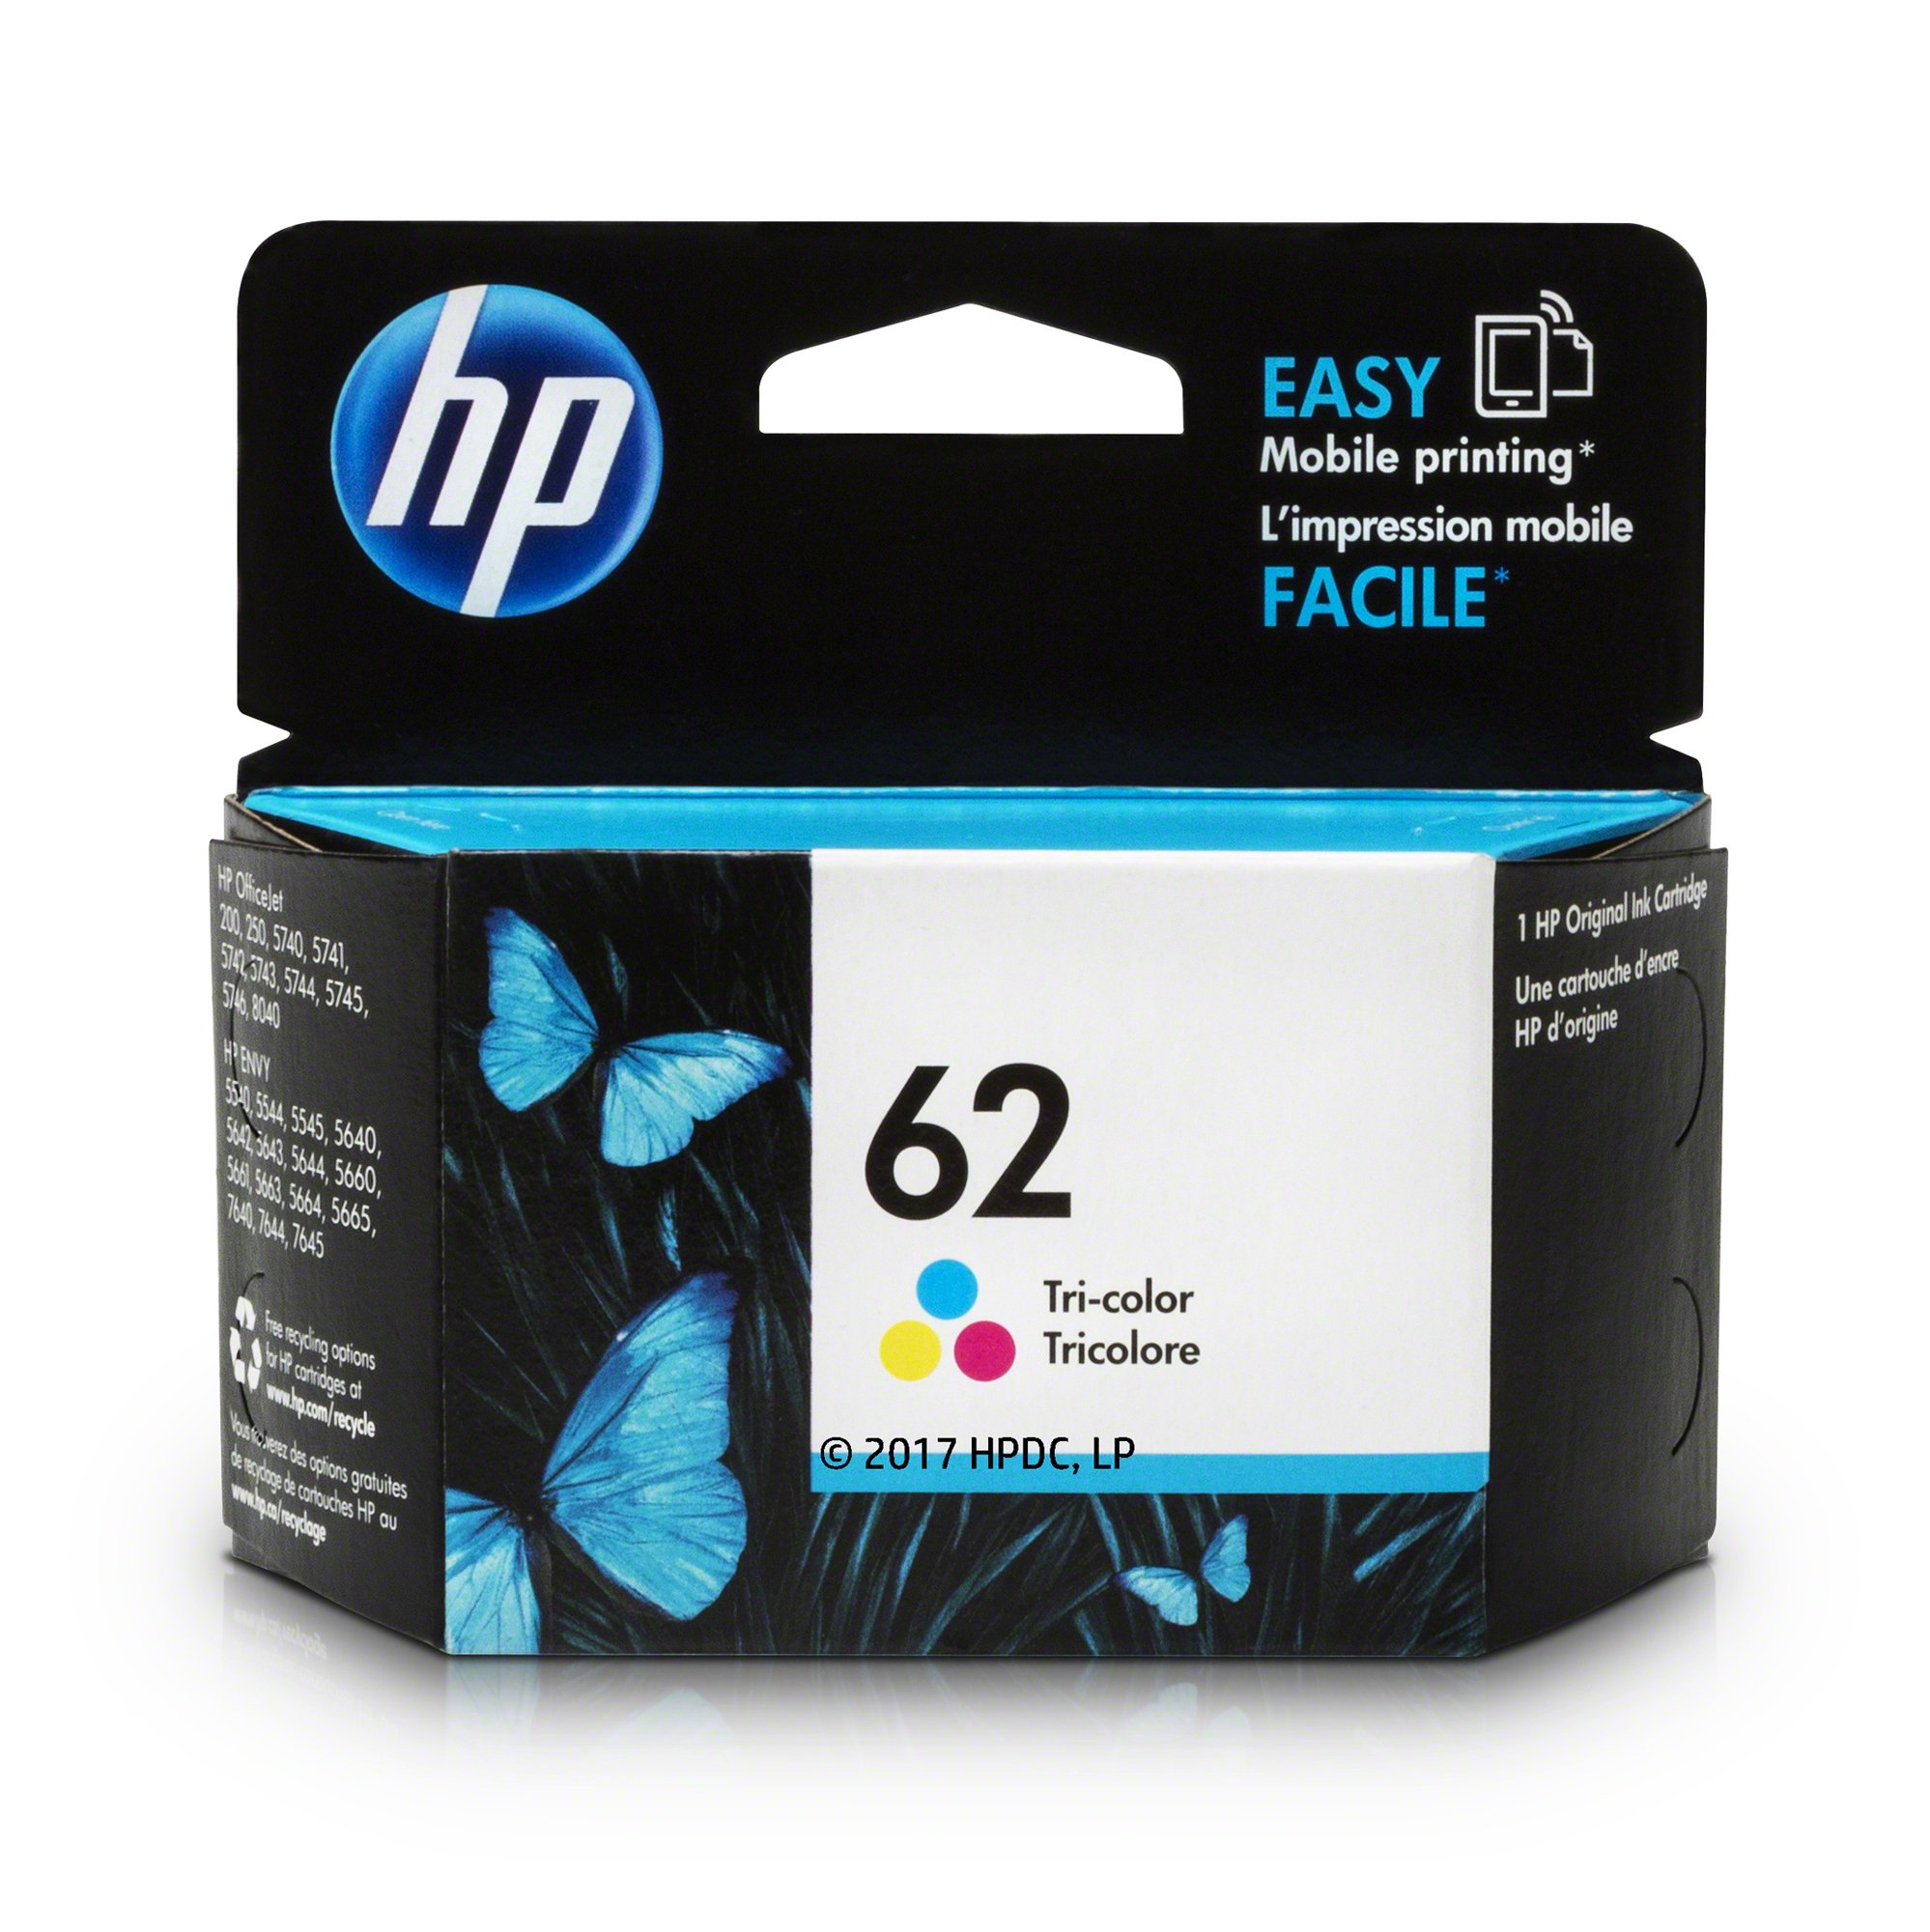 HP 62 Tri-color Original Ink Cartridge (C2P06AN) for HP ENVY 5540 5541 5542 5543 5544 5545 5547 5548 5549 5640 5642 5643 5644 5660 5661 5663 5664 5665 7640 7643 7644 7645 HP Officejet 200 250 258 5740 5741 5742 5743 5744 5745 5746 8040